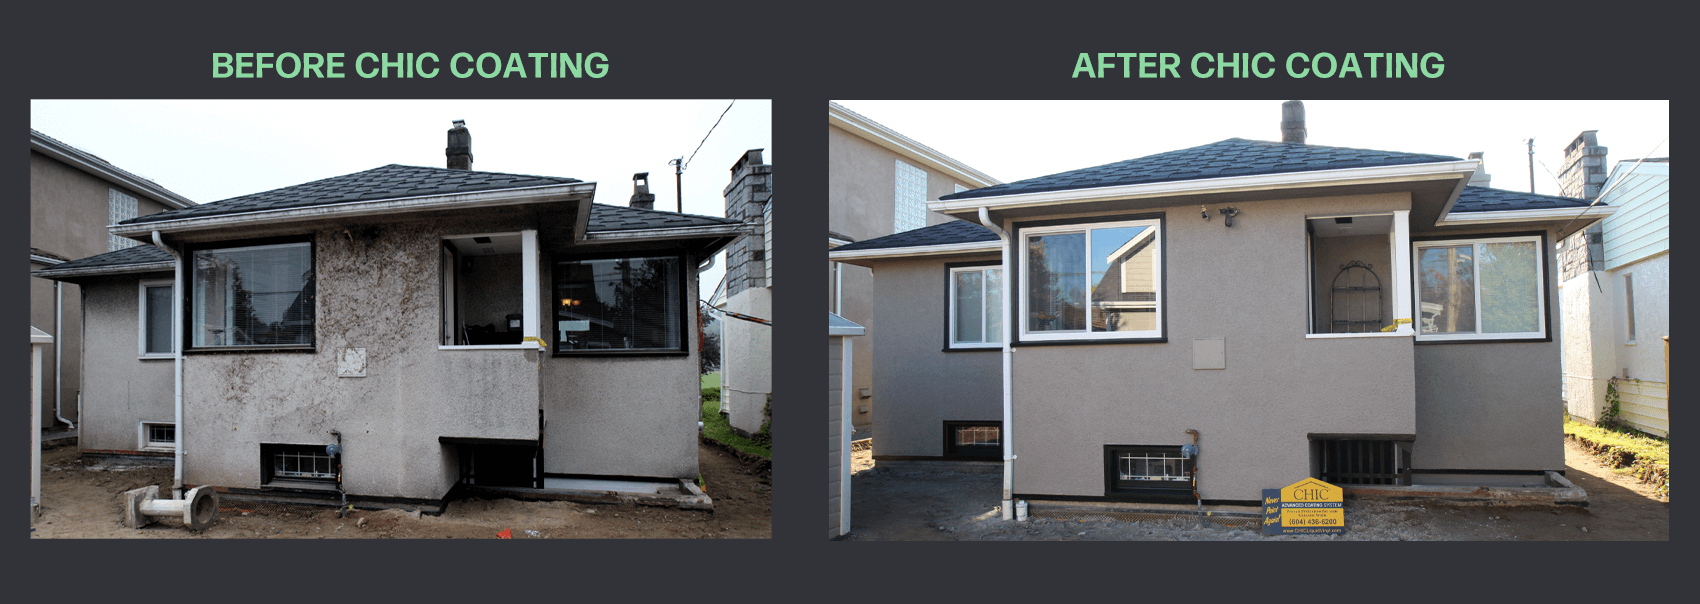 Before and after CHIC stucco coating